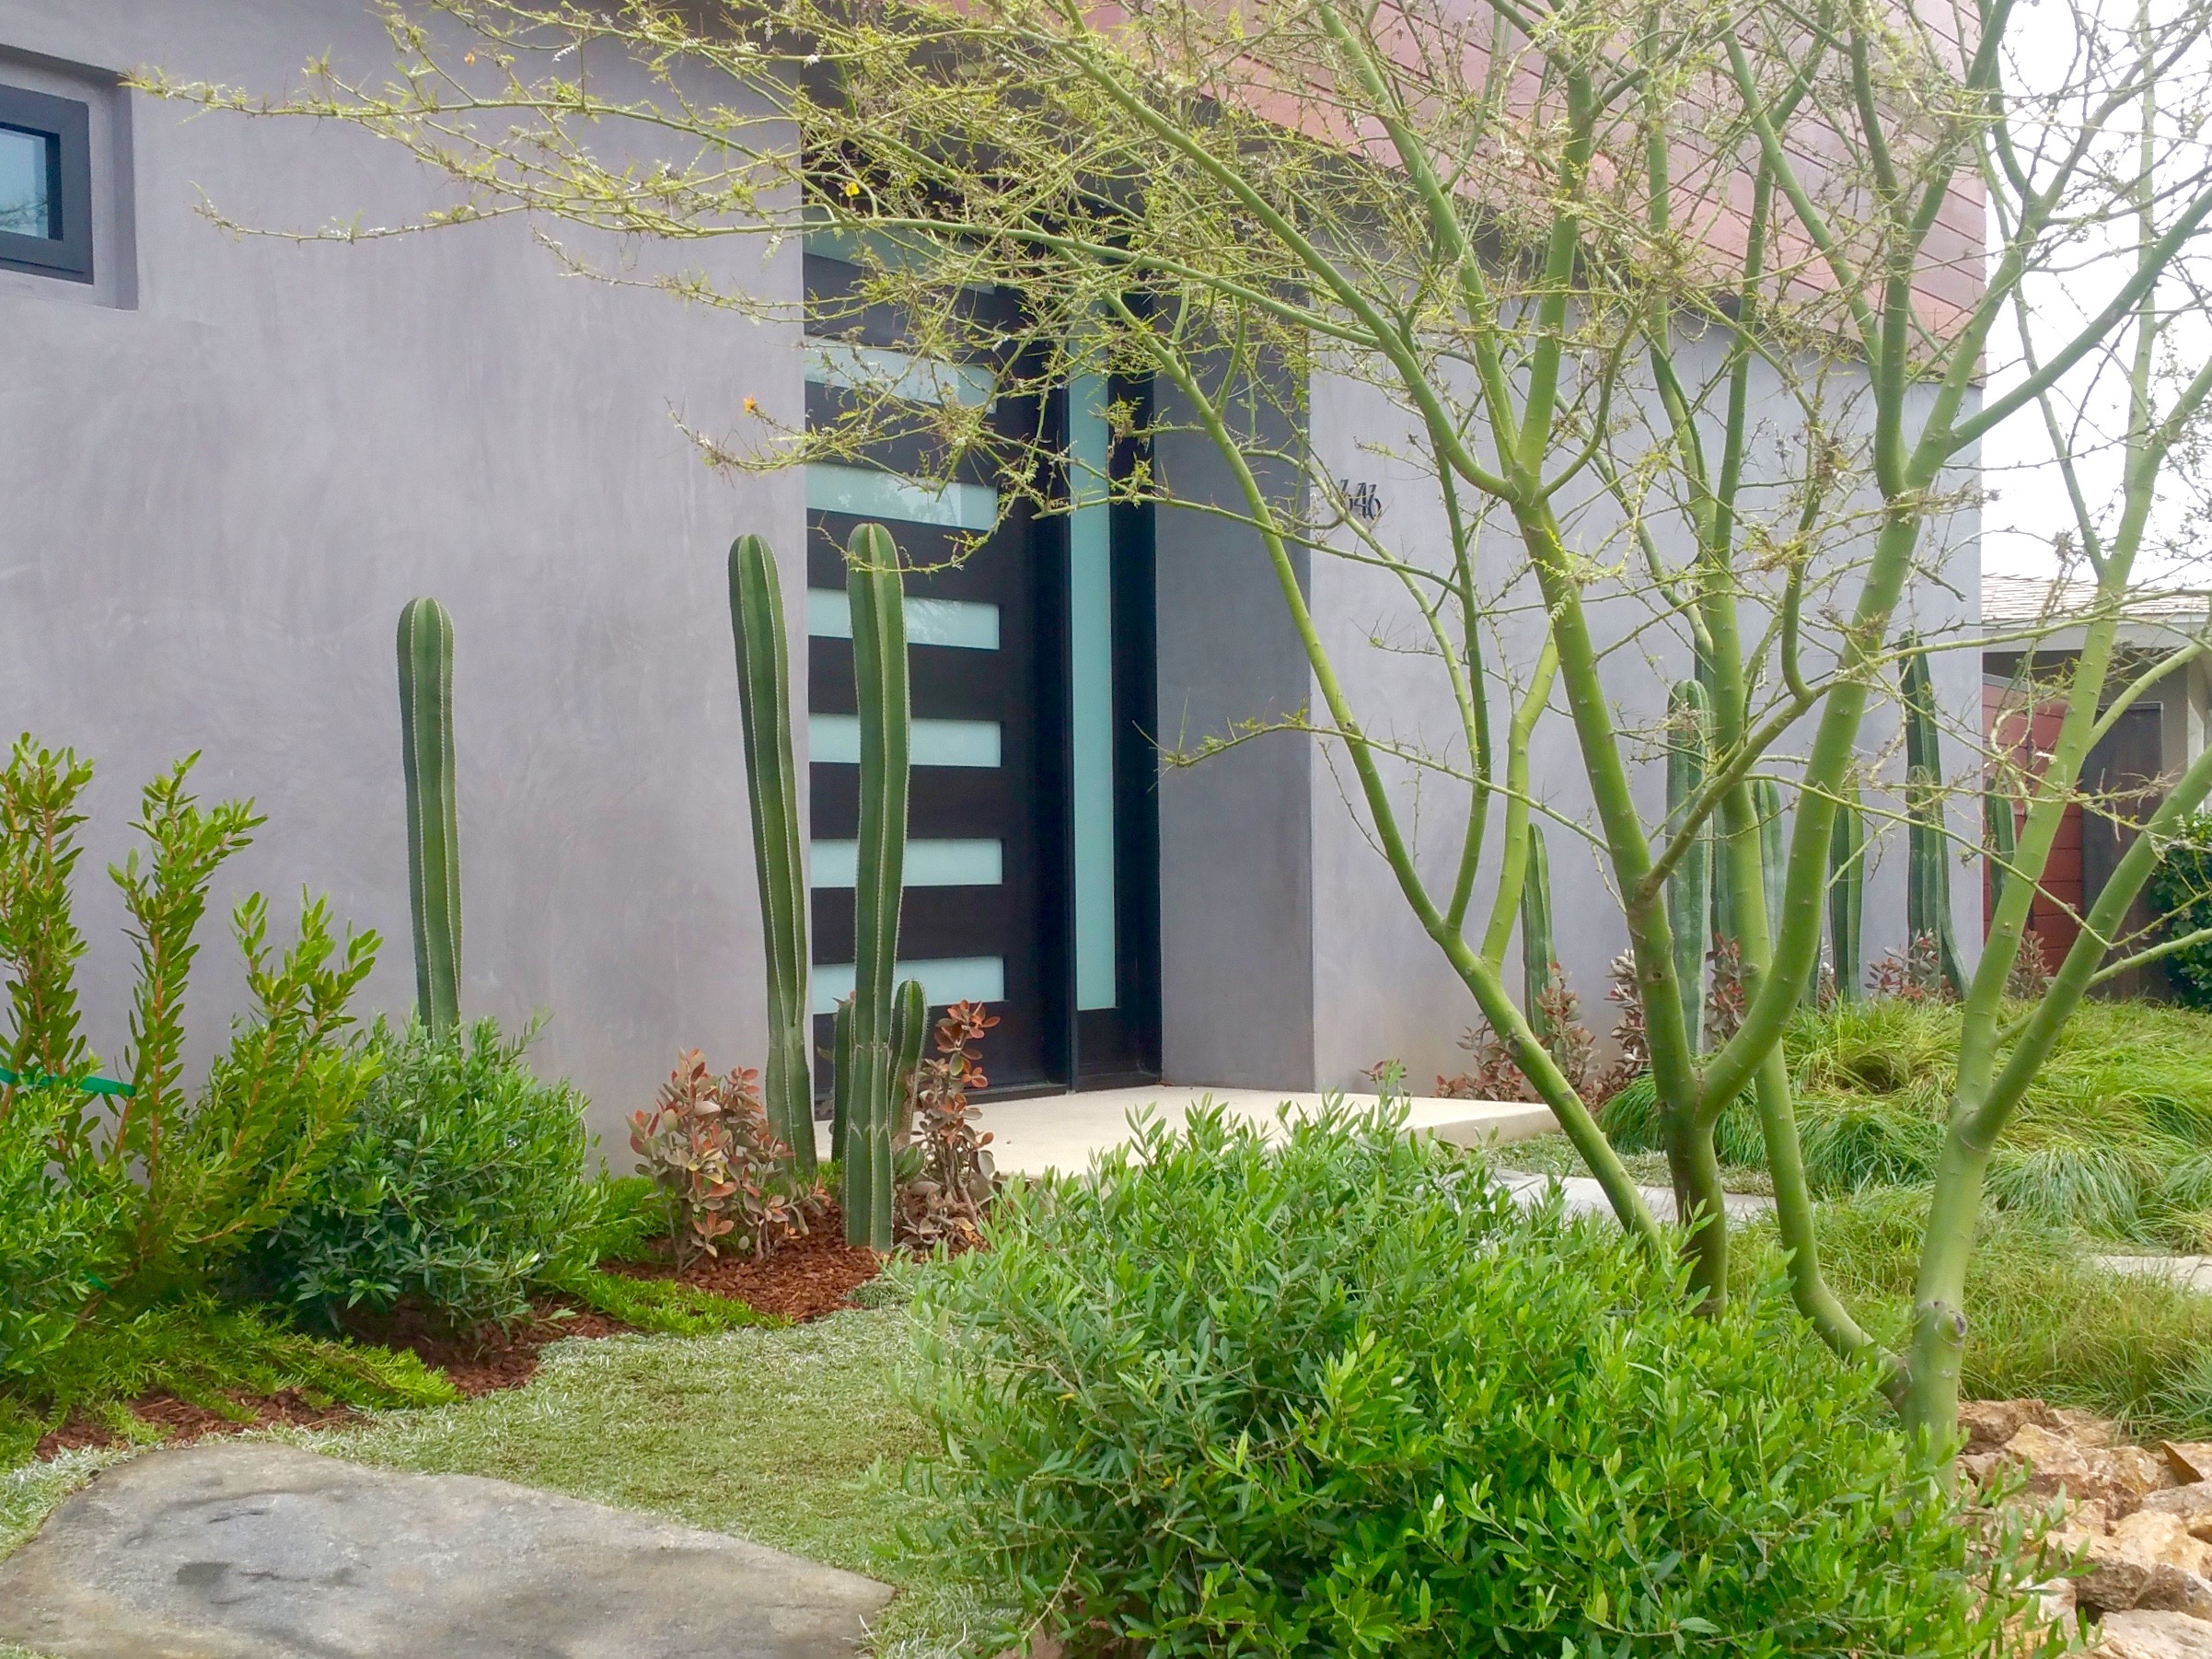 LAS LOMAS - This ultra modern family home needed warmth and depth brought to their landscape. Using low maintenance xeriscape plants and trees, extra large flagstone and low accent walls we layered textures and colors to provide visual interest depth to this narrow yard.